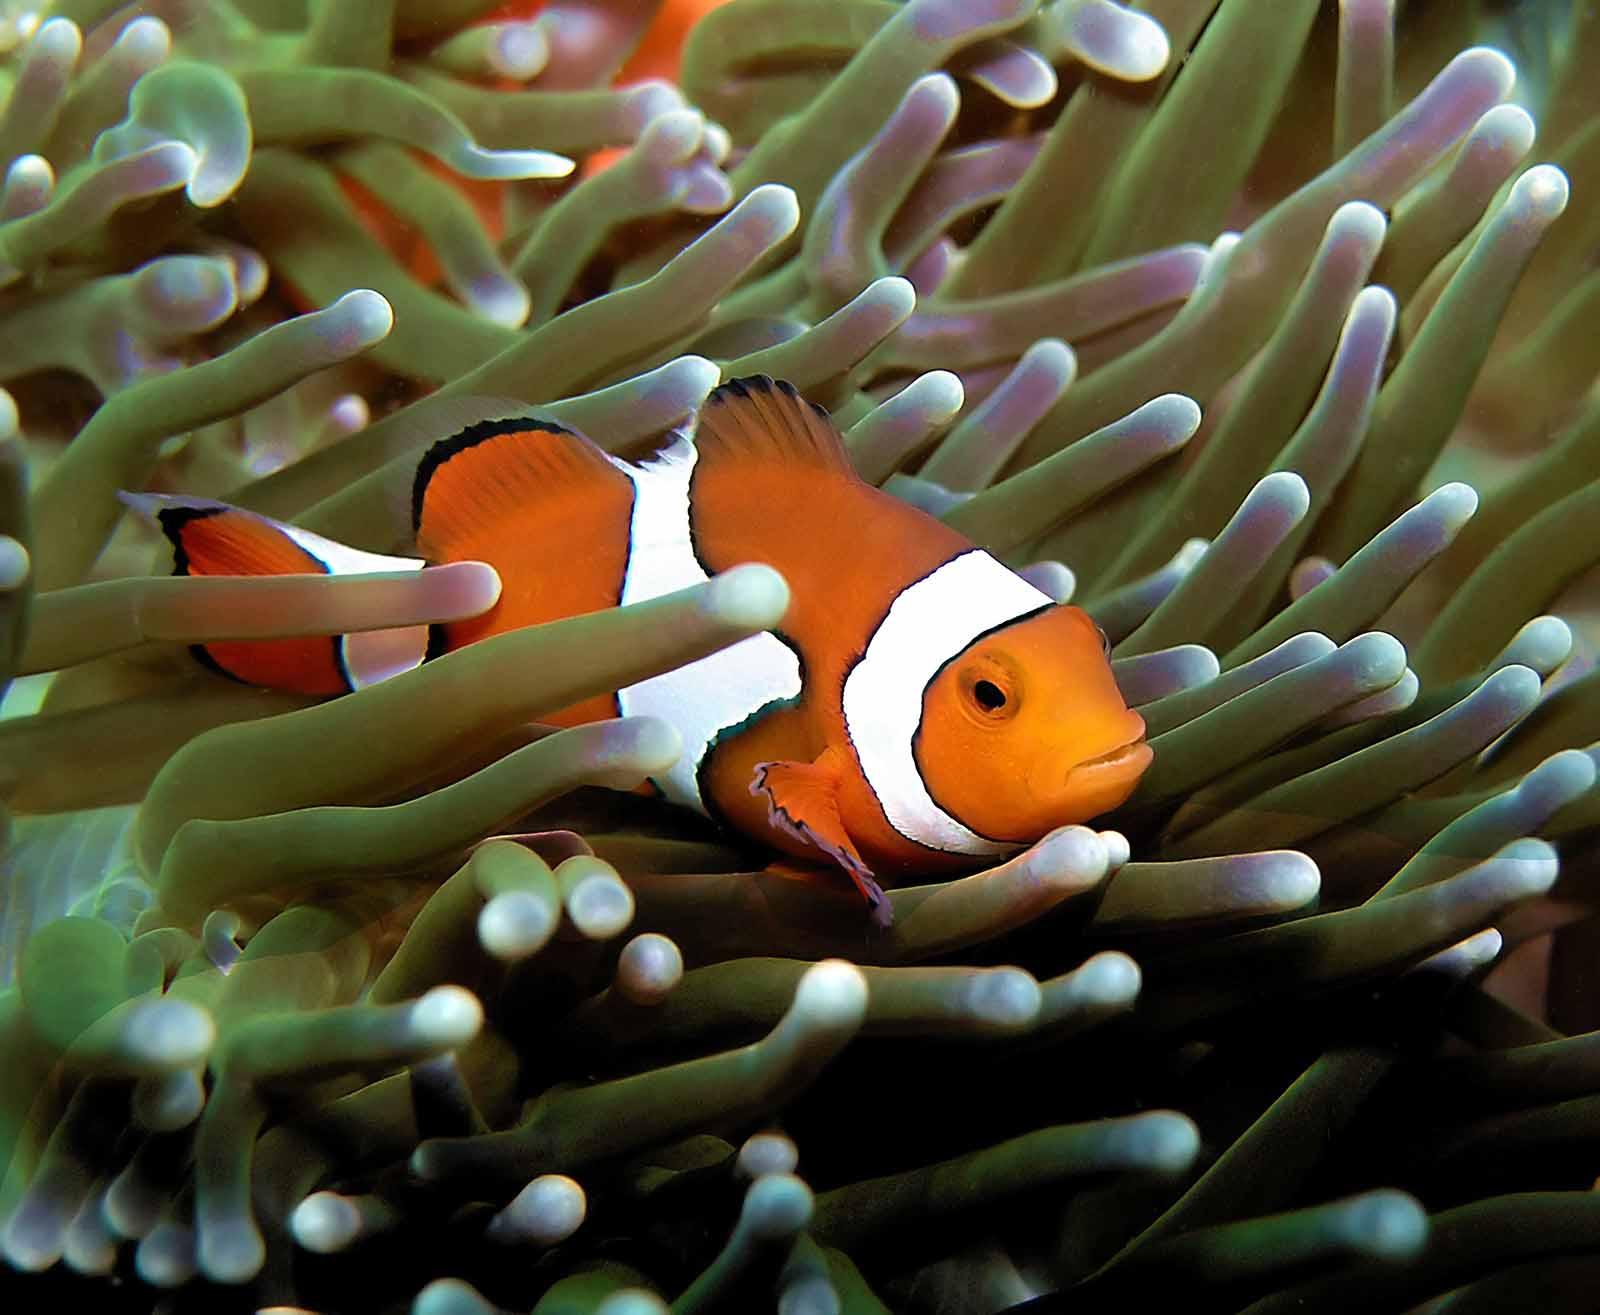 Clown Anemonefish possibility